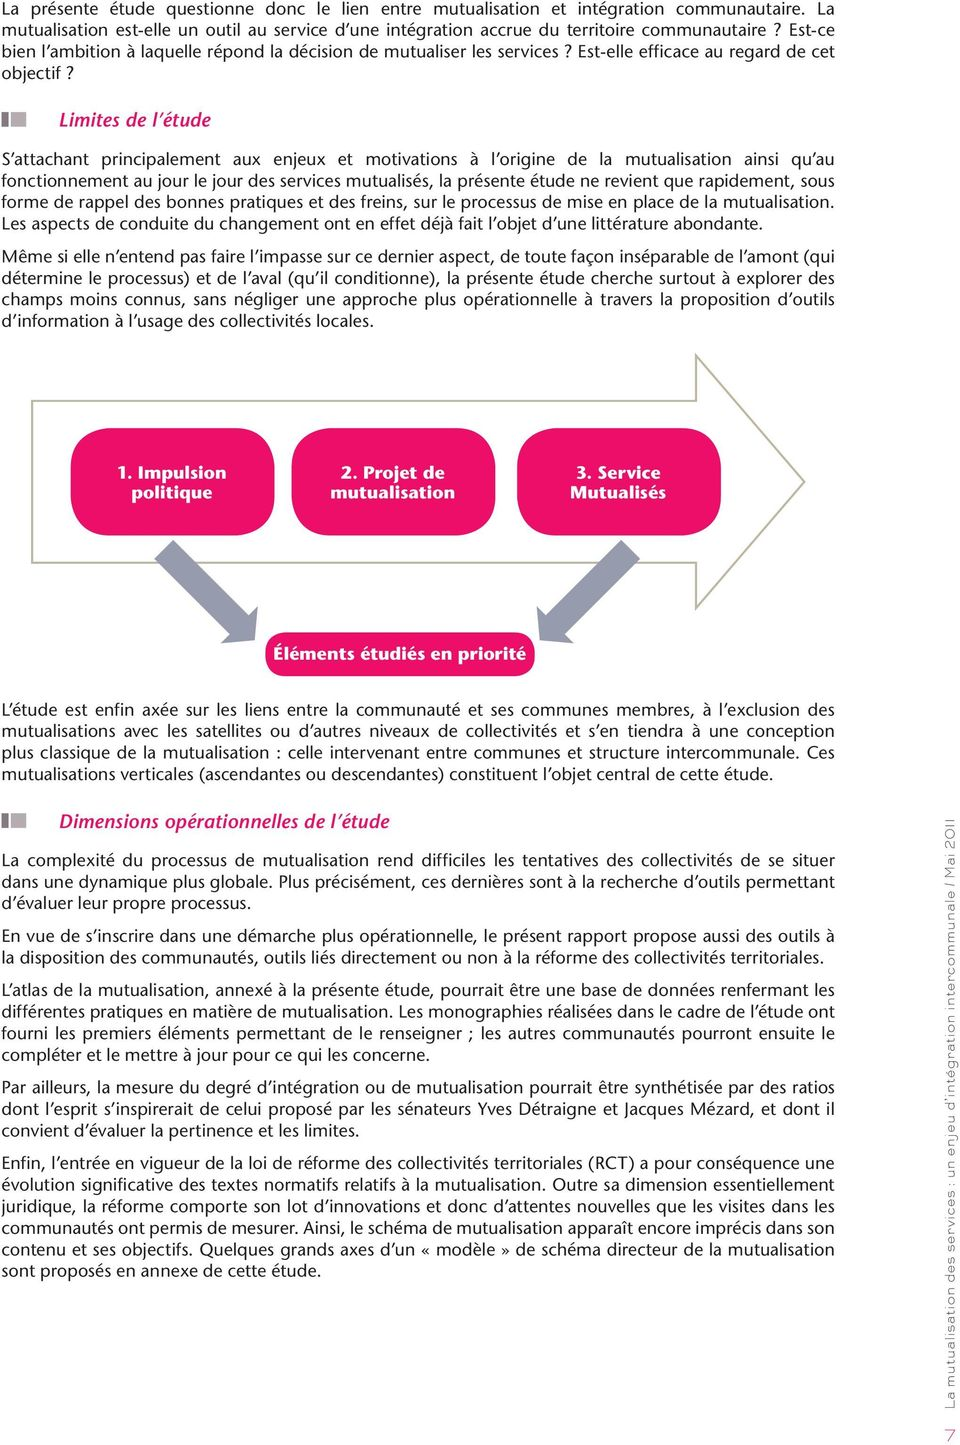 Limites de l étude S attachant principalement aux enjeux et motivations à l origine de la mutualisation ainsi qu au fonctionnement au jour le jour des services mutualisés, la présente étude ne